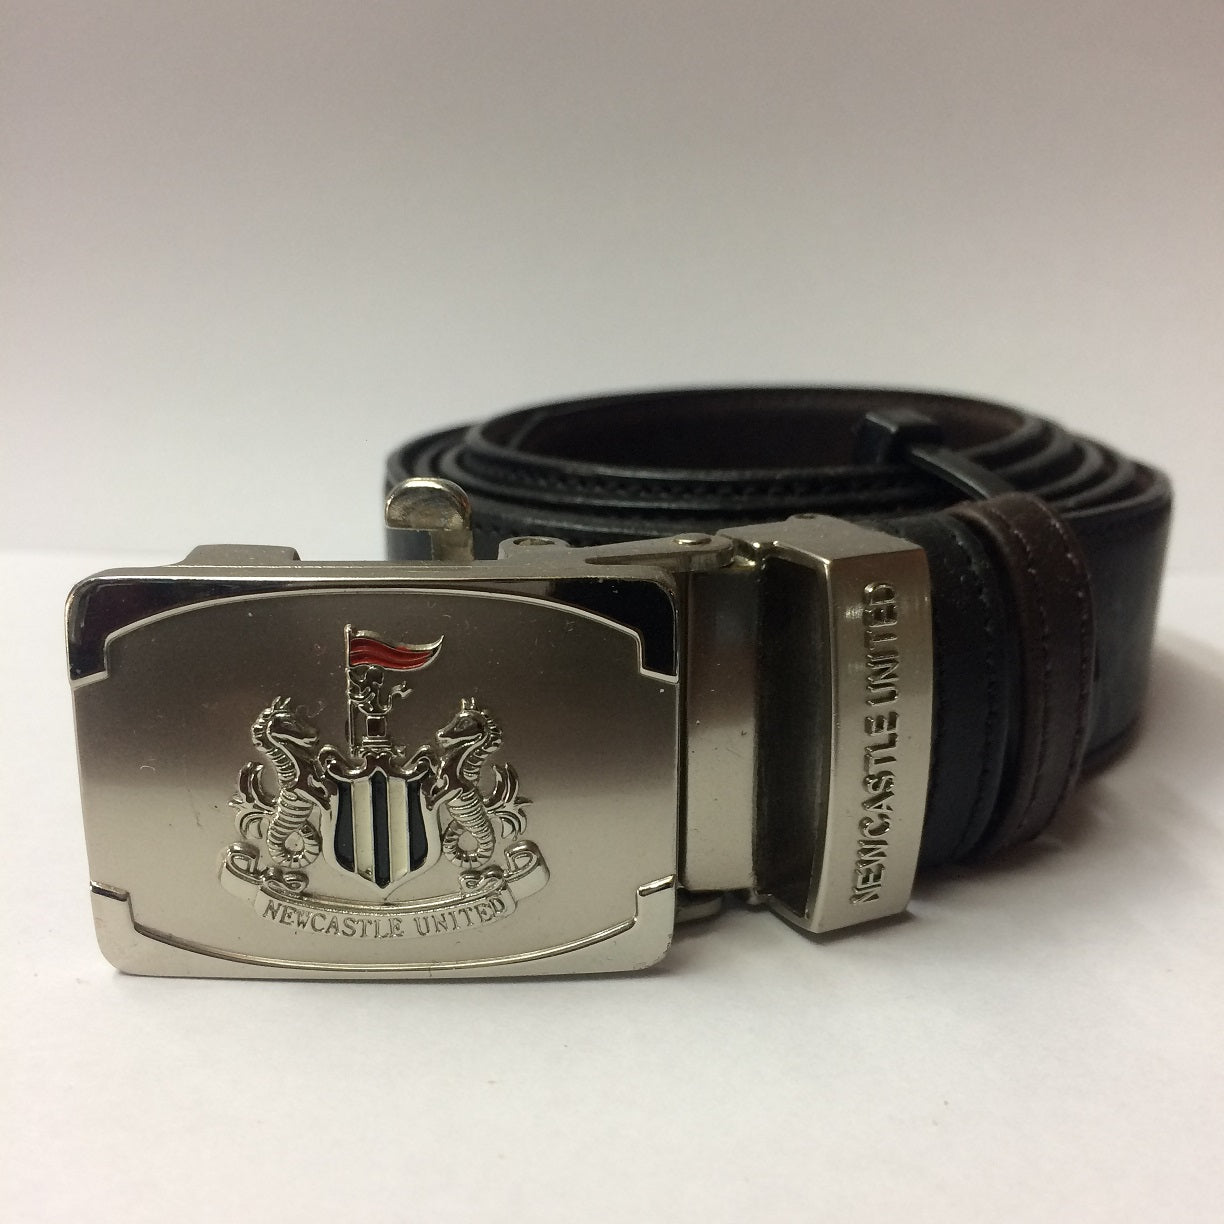 Newcastle United Men's Dress Belt